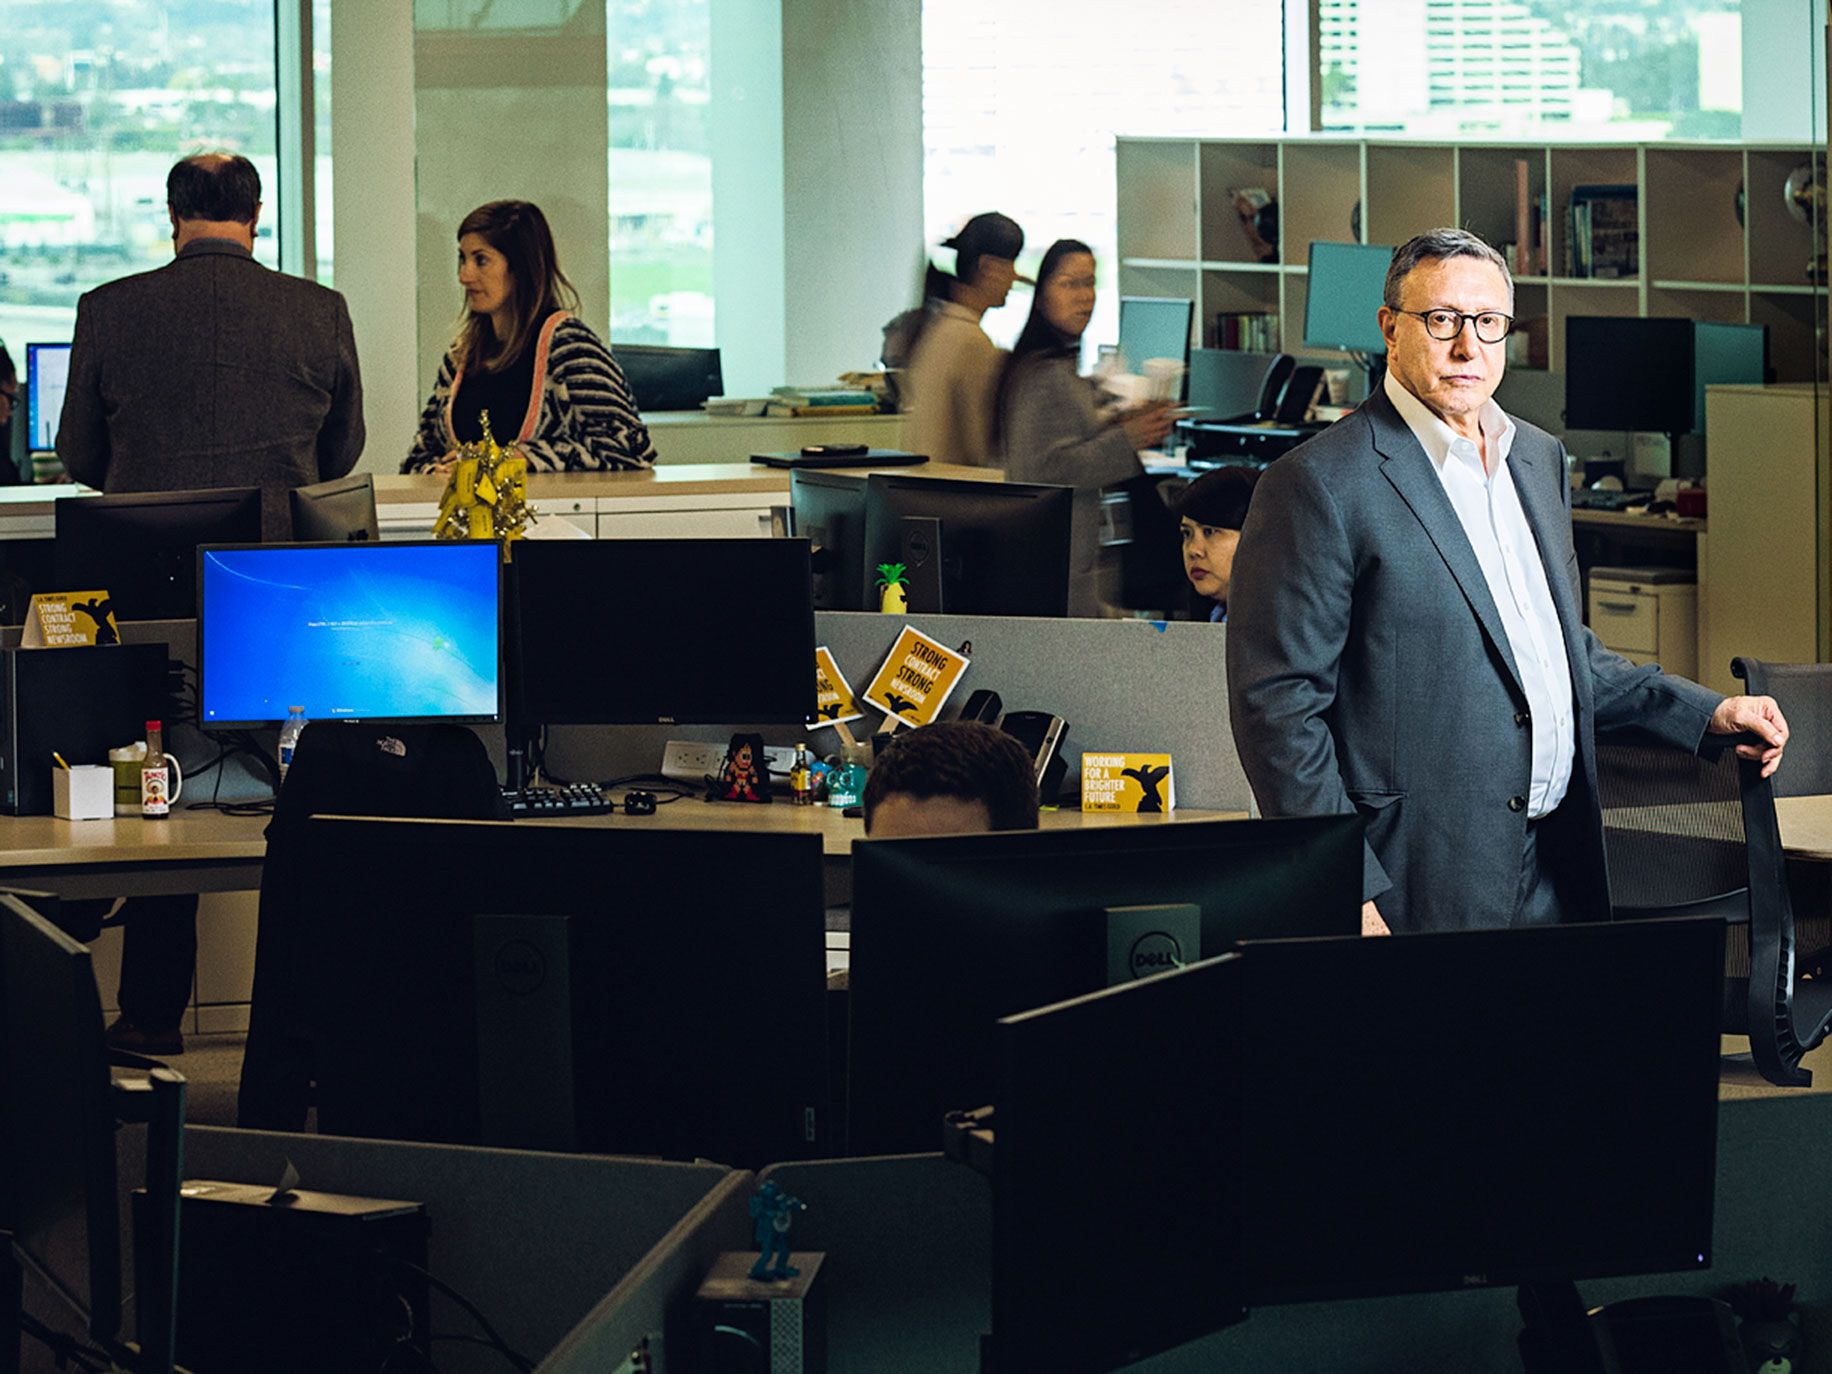 Executive editor Norman Pearlstine in the newsroom of the Los Angeles Times' new building. Soon-Shiong moved the newspaper's operations to El Segundo, about 19 miles away from its former downtown L.A. headquarters.